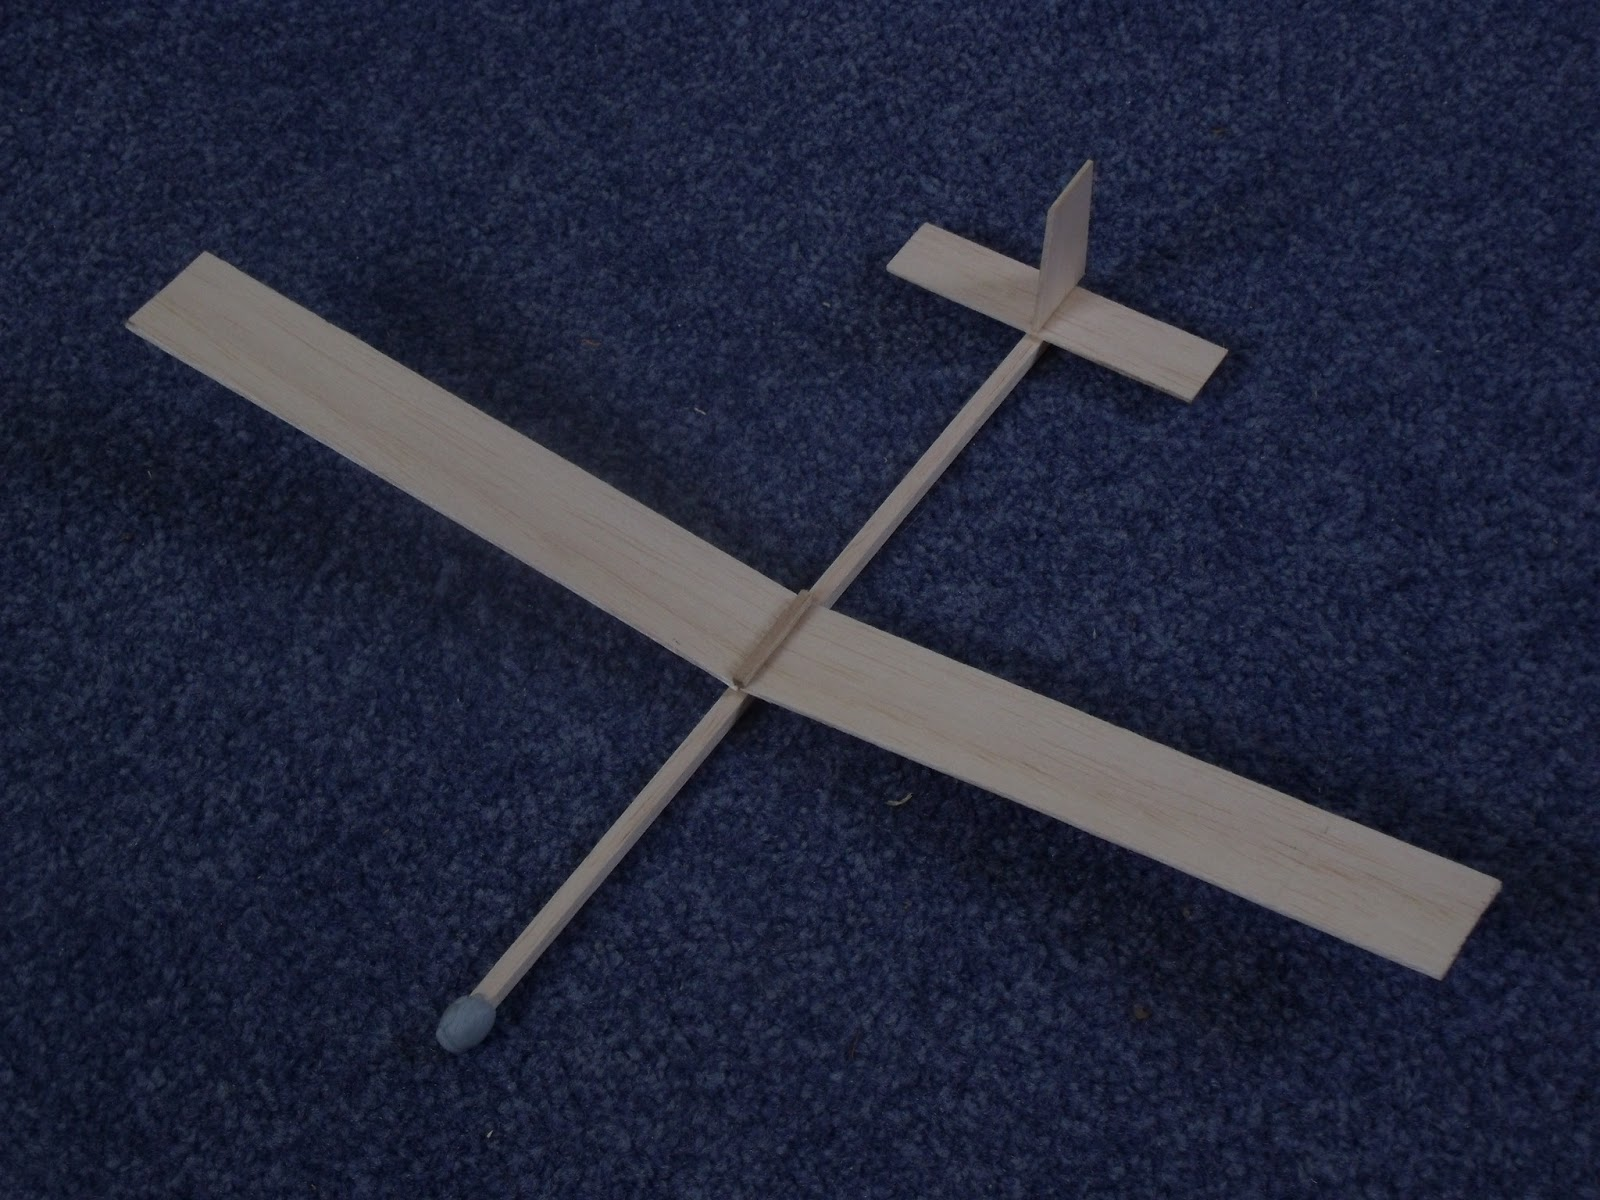 balsa wood sailplane